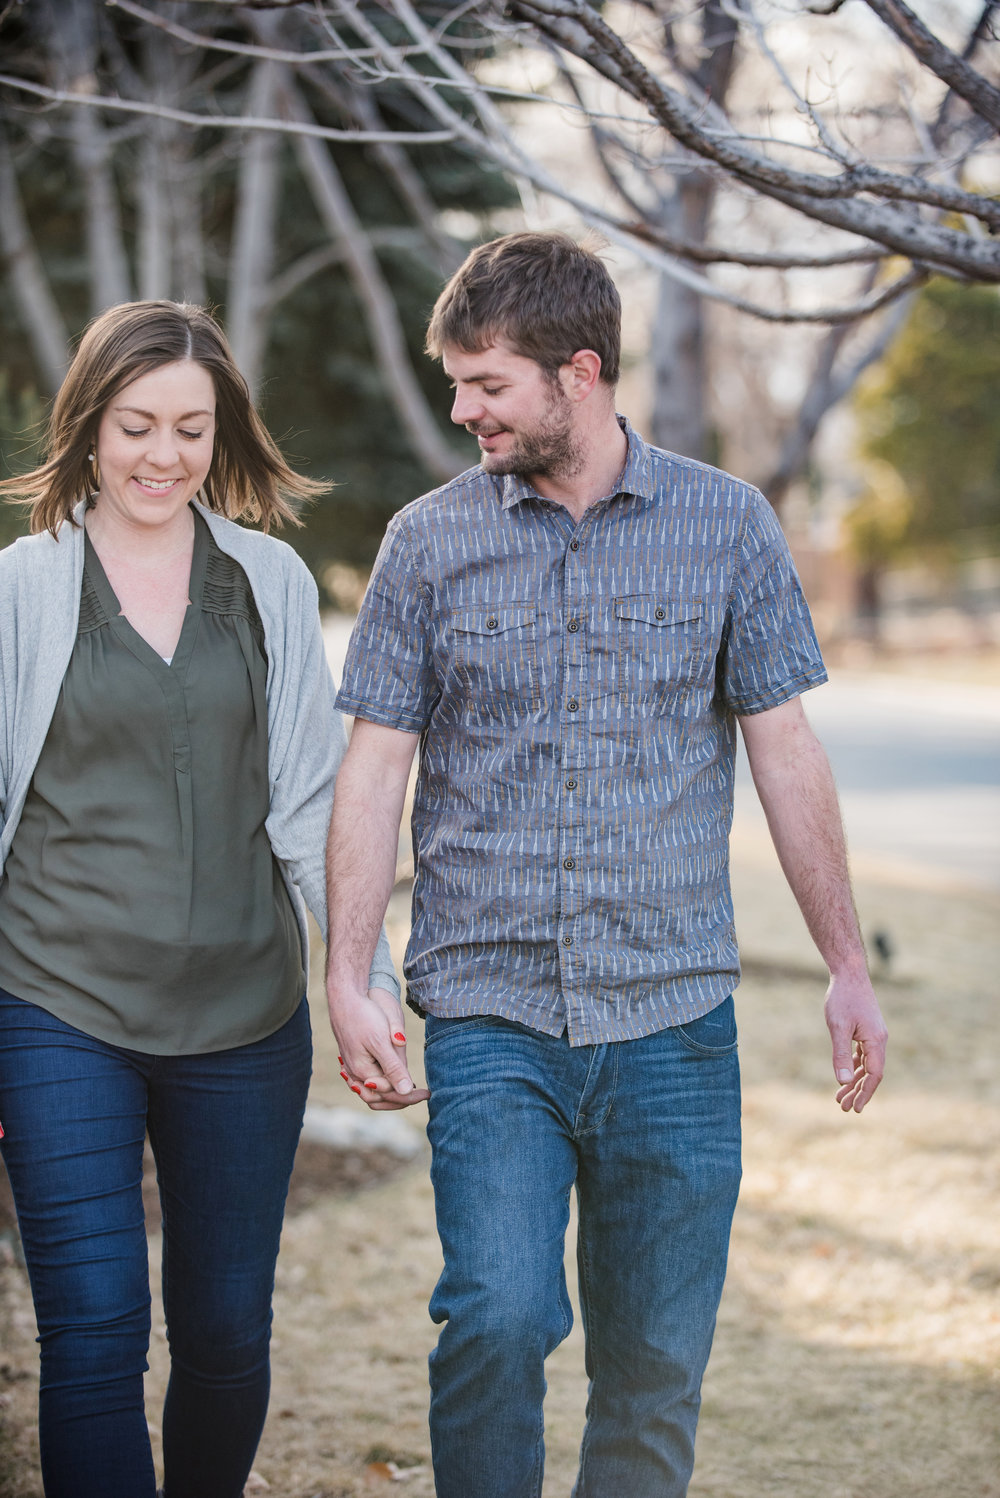 Lifestyle_Engagement_Session_In_Home_Denver_020modern_farmhouse_rusticerny_photo_co_colorado_farm.jpg